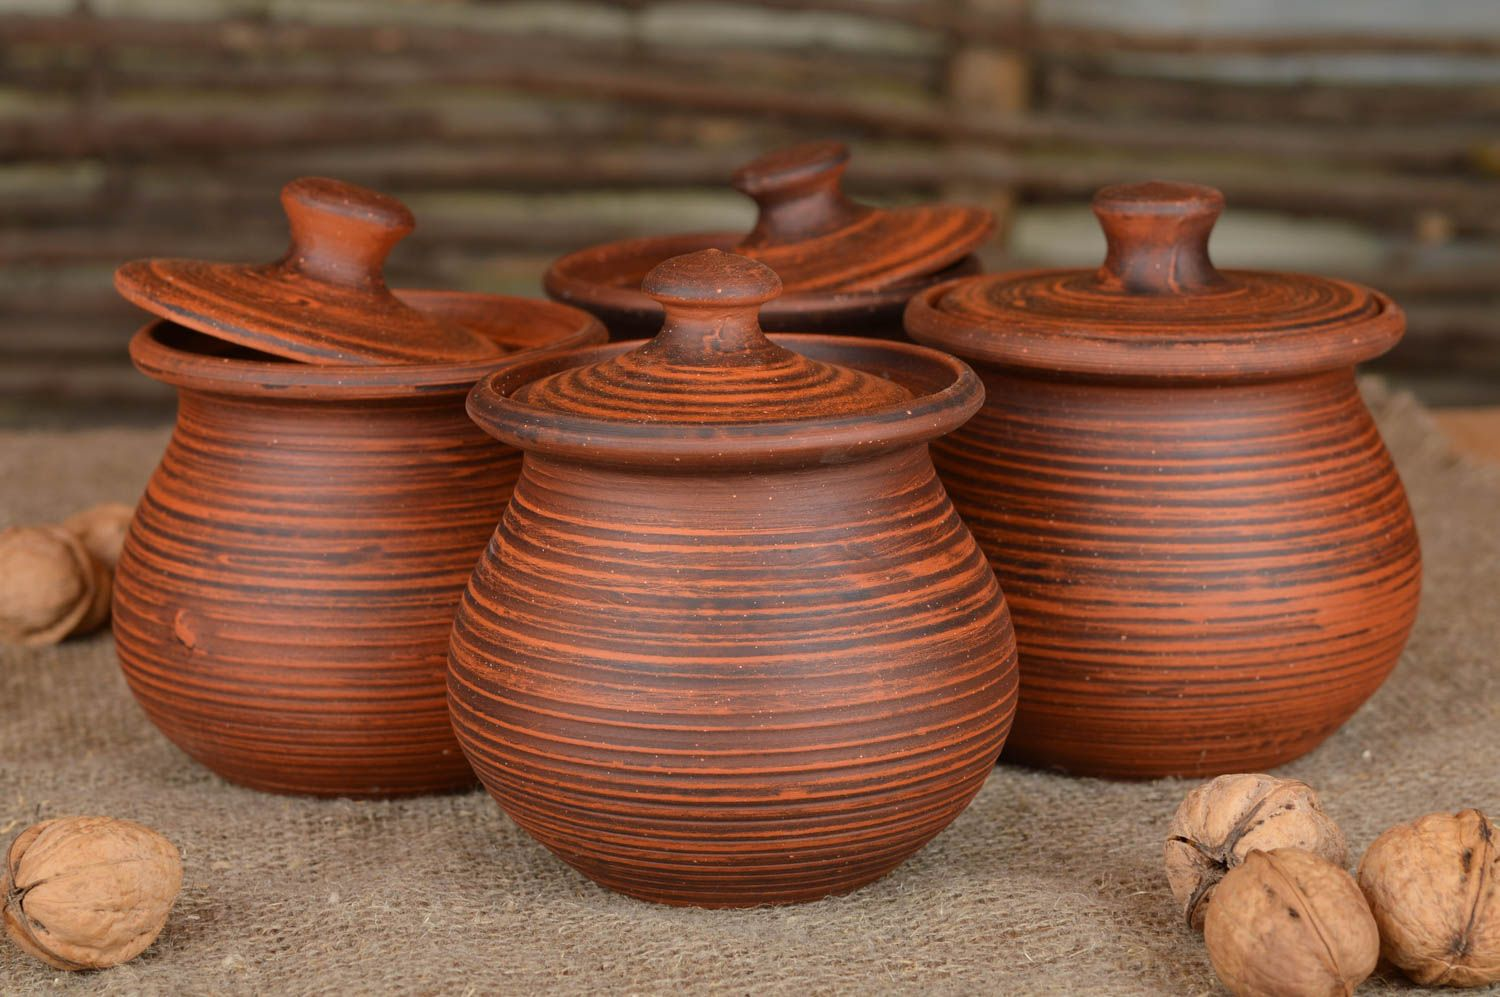 Set of handmade ceramic pots with lids for baking 4 items for 400 ml photo 2